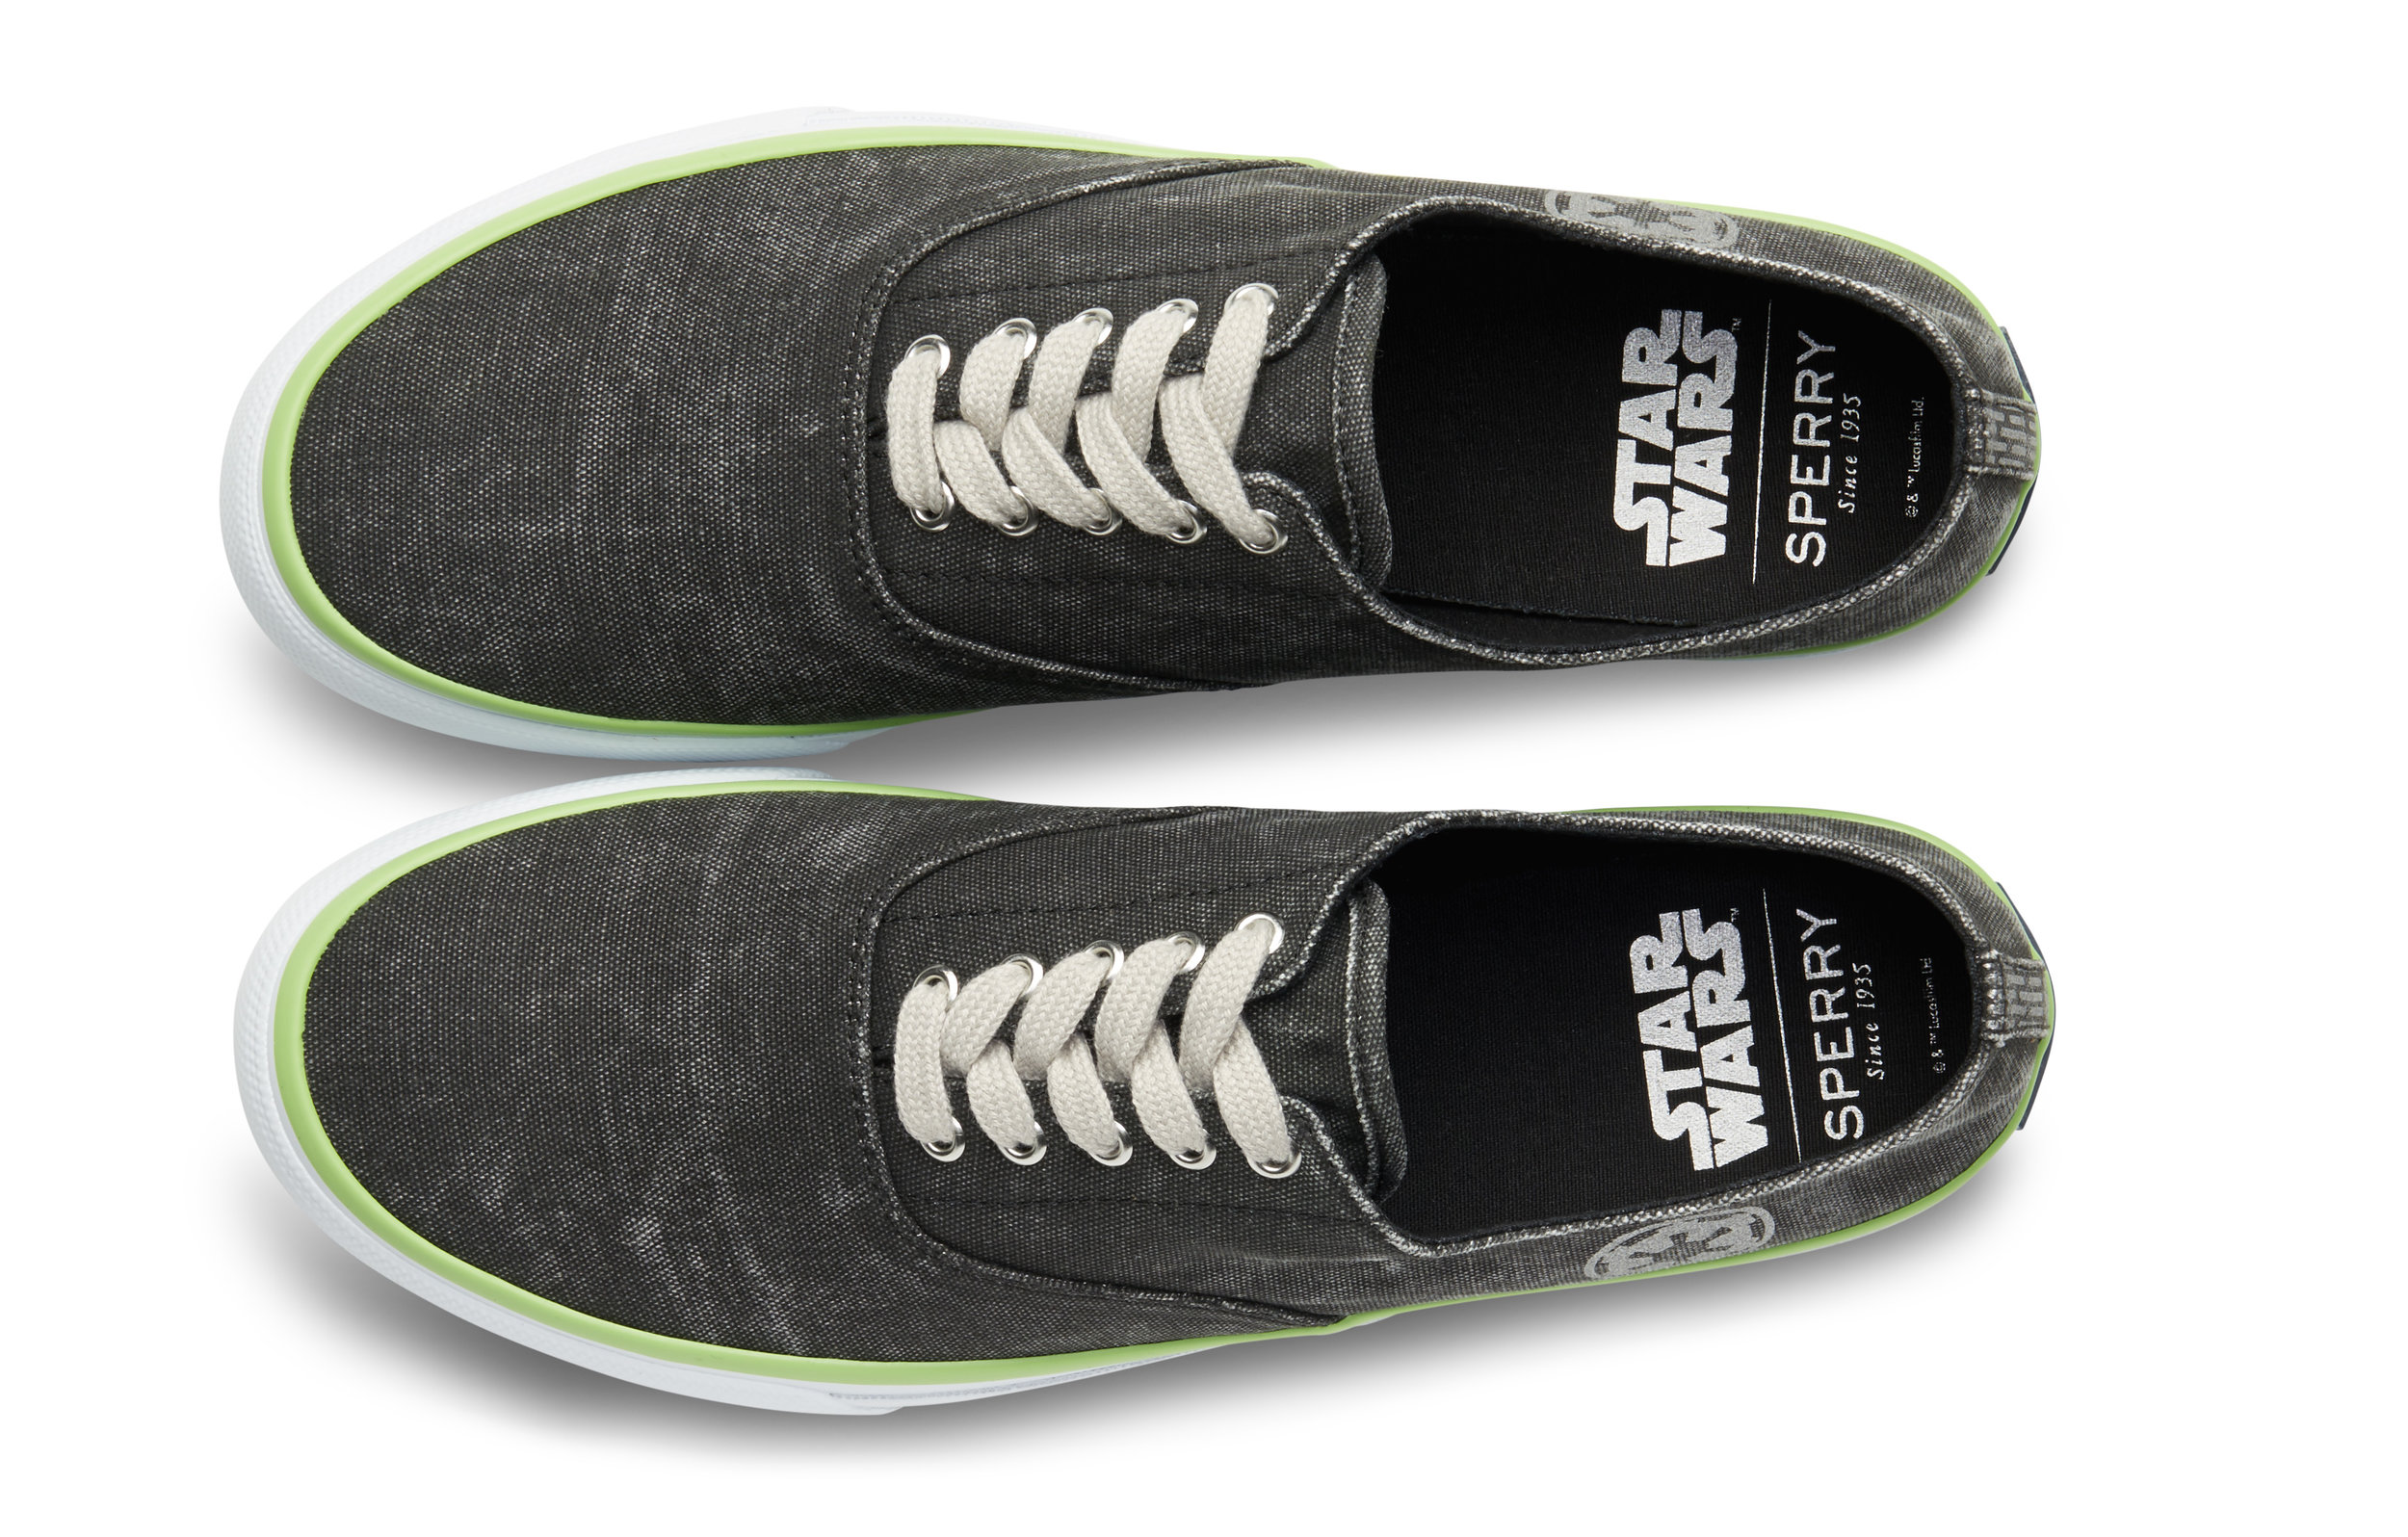 check-out-this-cool-line-of-star-wars-themed-shoes-from-sperry5.jpg